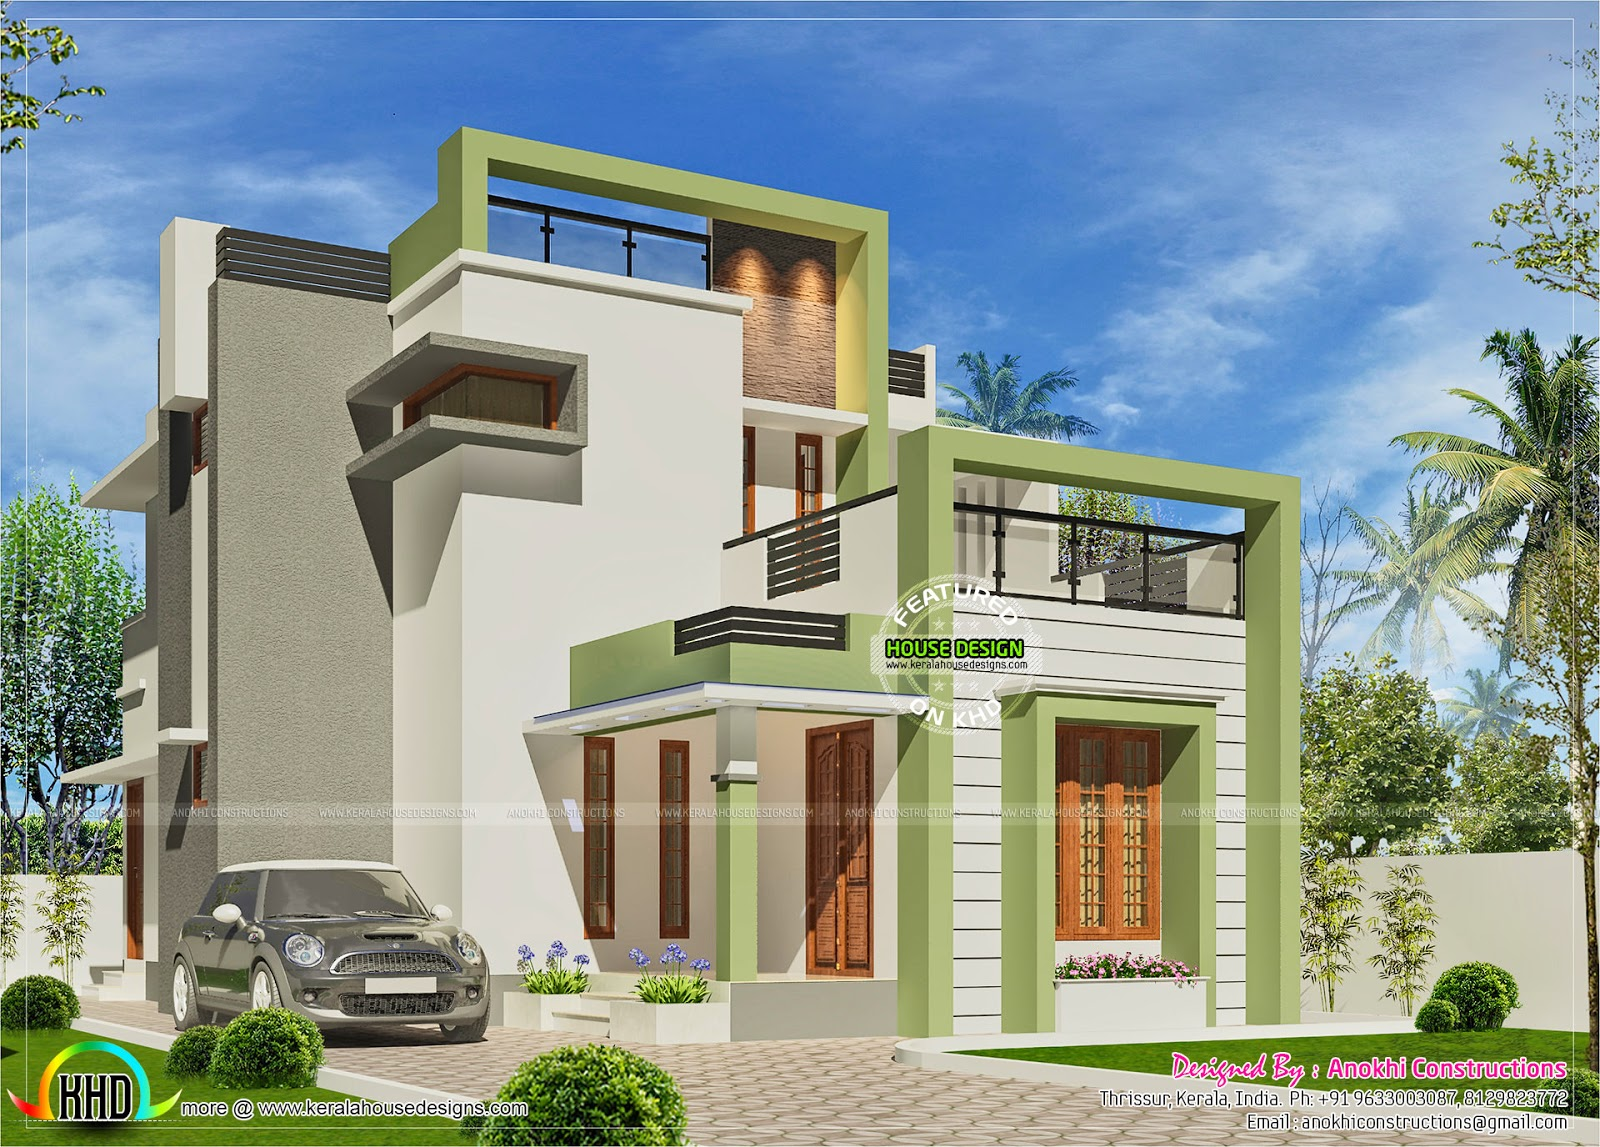 Simple small budget contemporary home kerala home design for Small house design budget